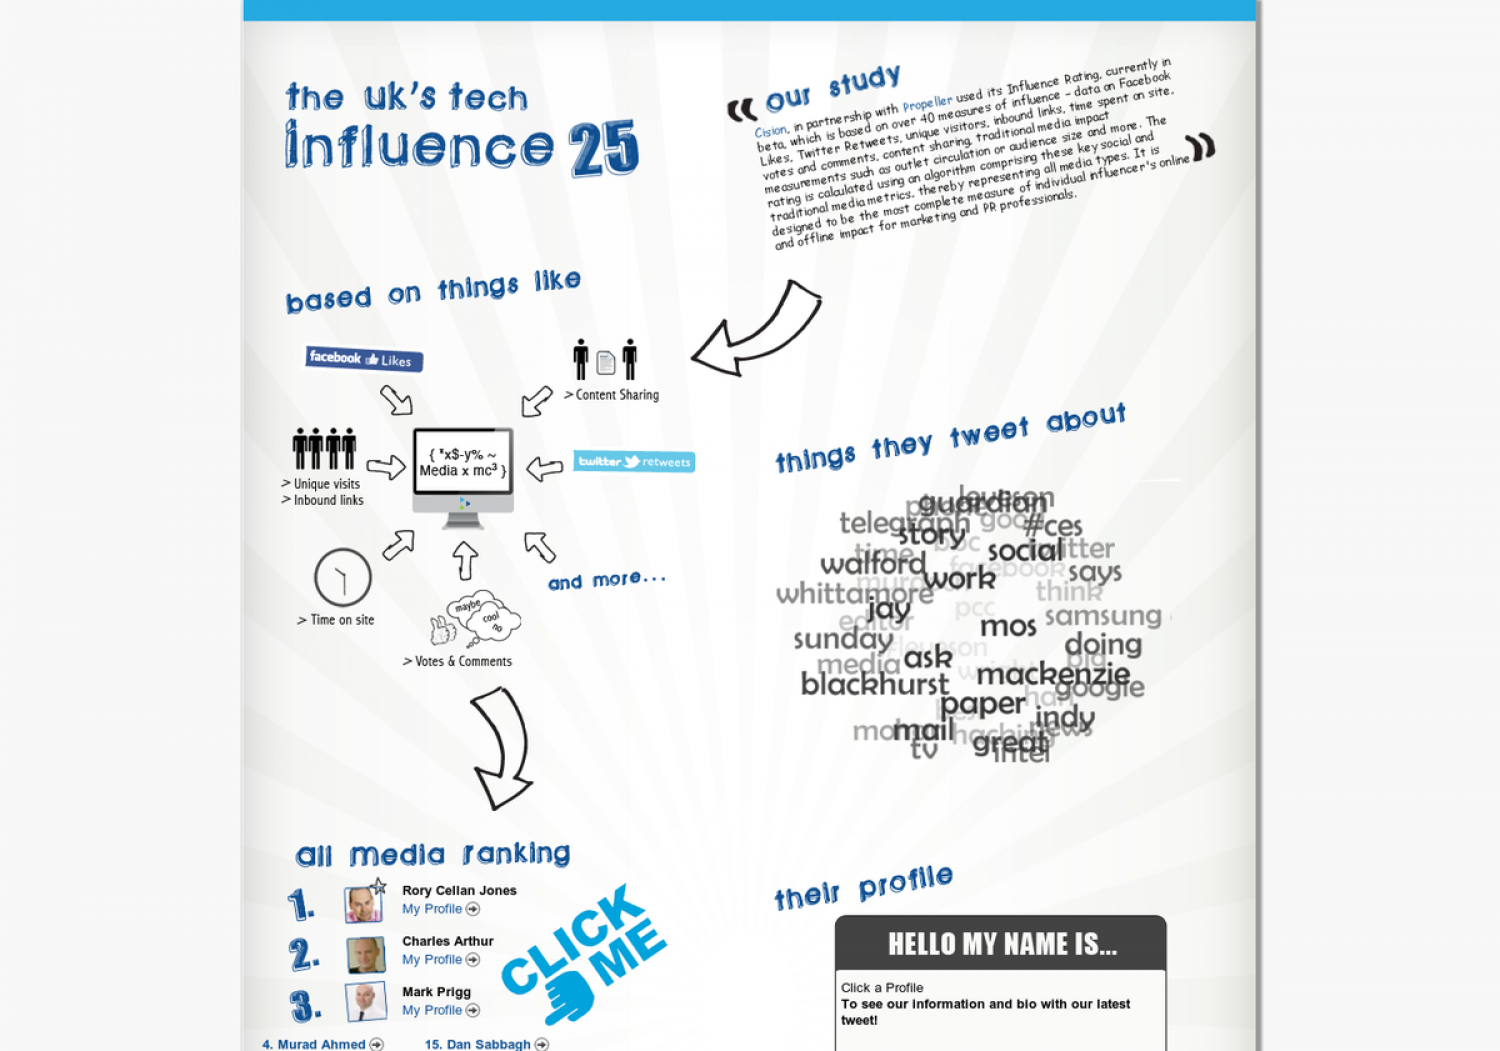 UK's Tech Influence 25 Infographic